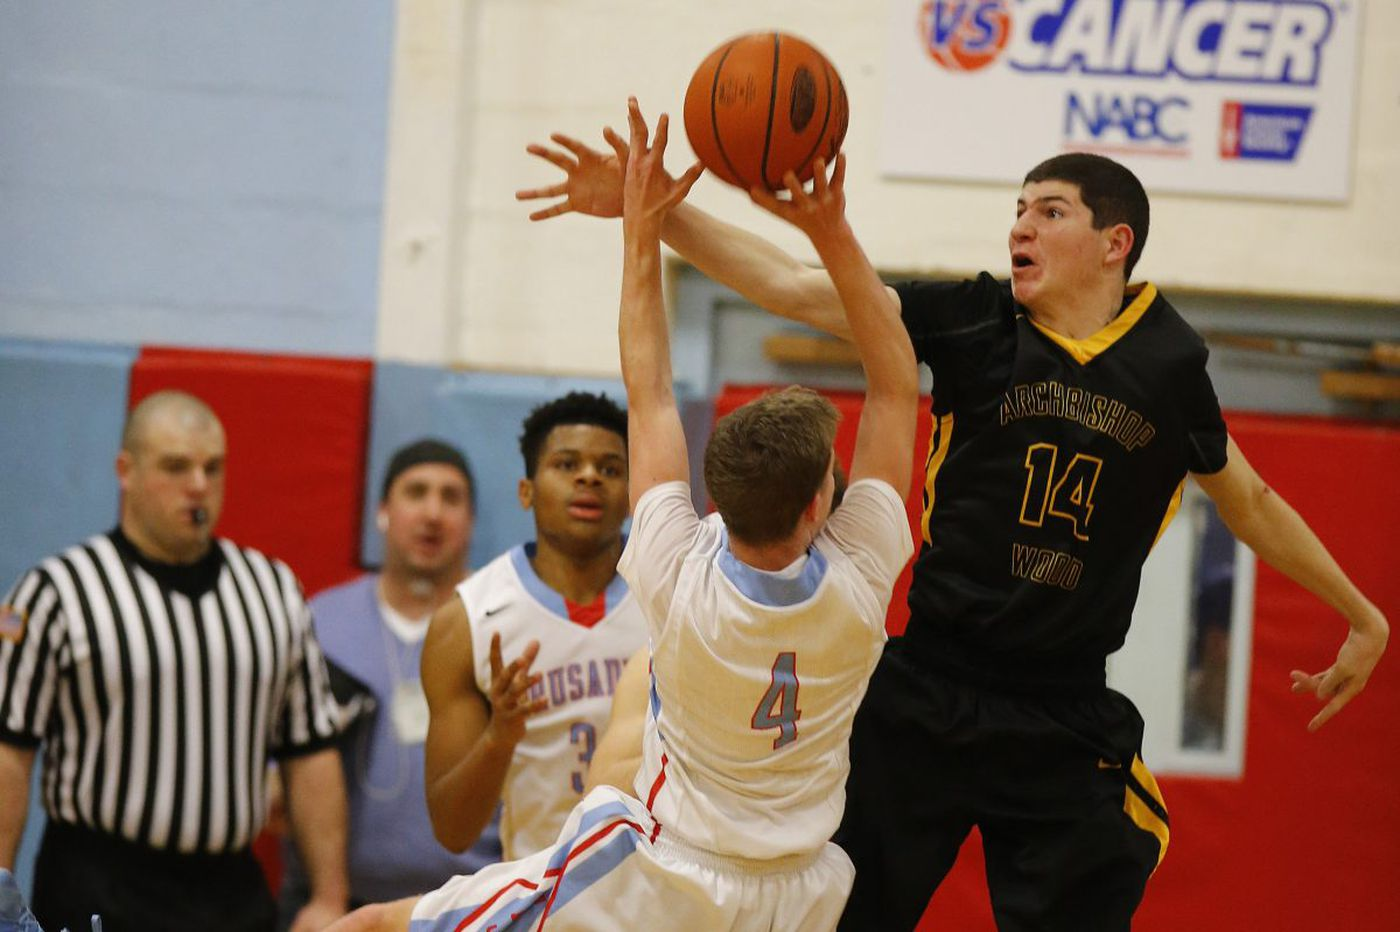 Andrew Funk plays a leading role for Archbishop Wood basketball